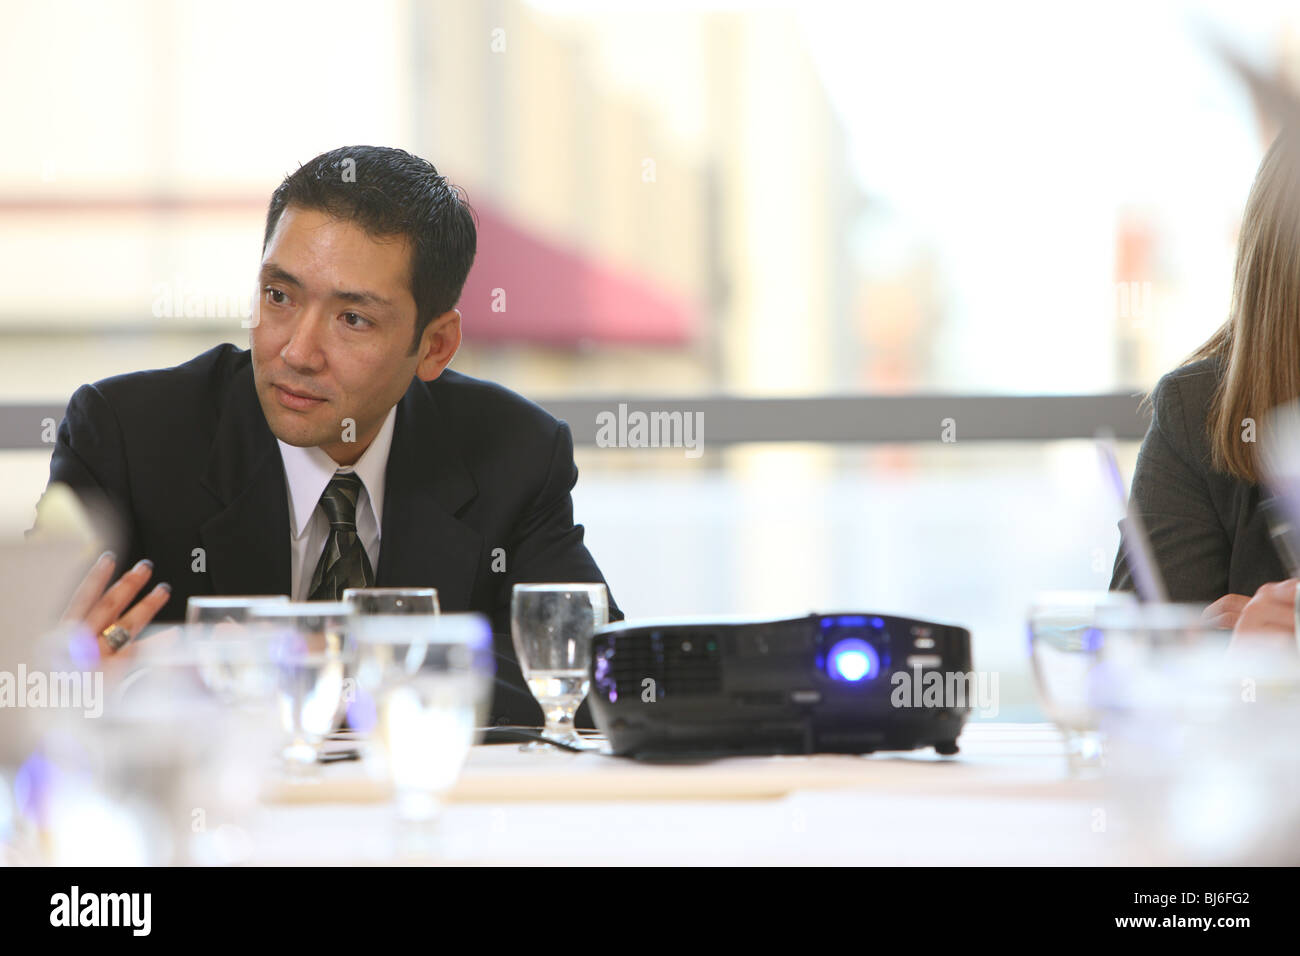 Businessman in meeting Photo Stock